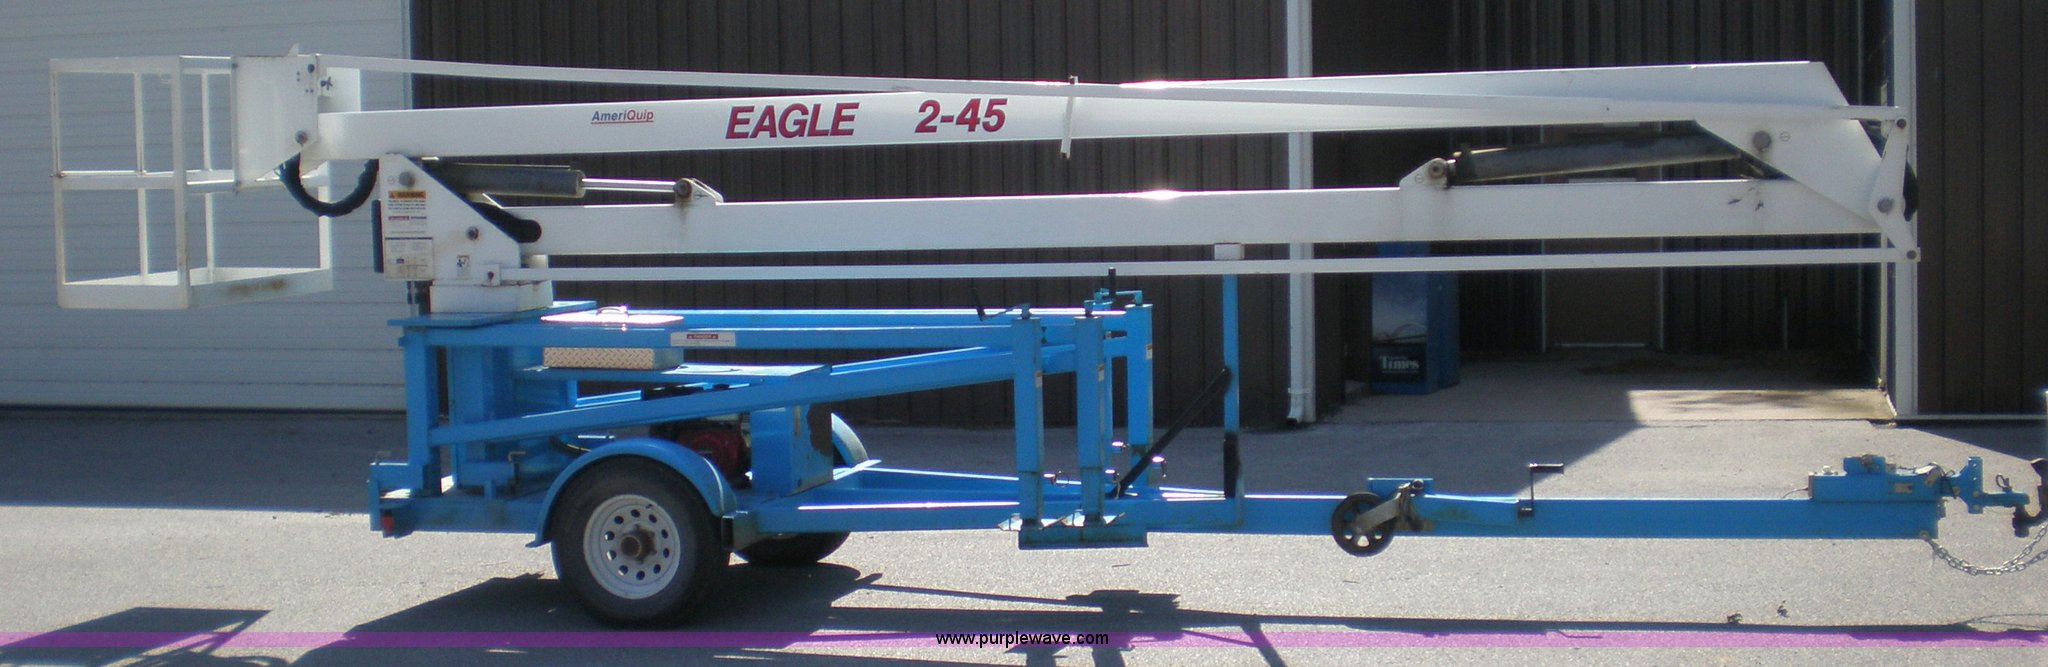 Eagle 2 45 Lift Wiring Diagram Detailed Schematics Tommy Gate Diagrams 1997 Ameriquip Boom Item 1460 Sold Octo 2007 Gmc